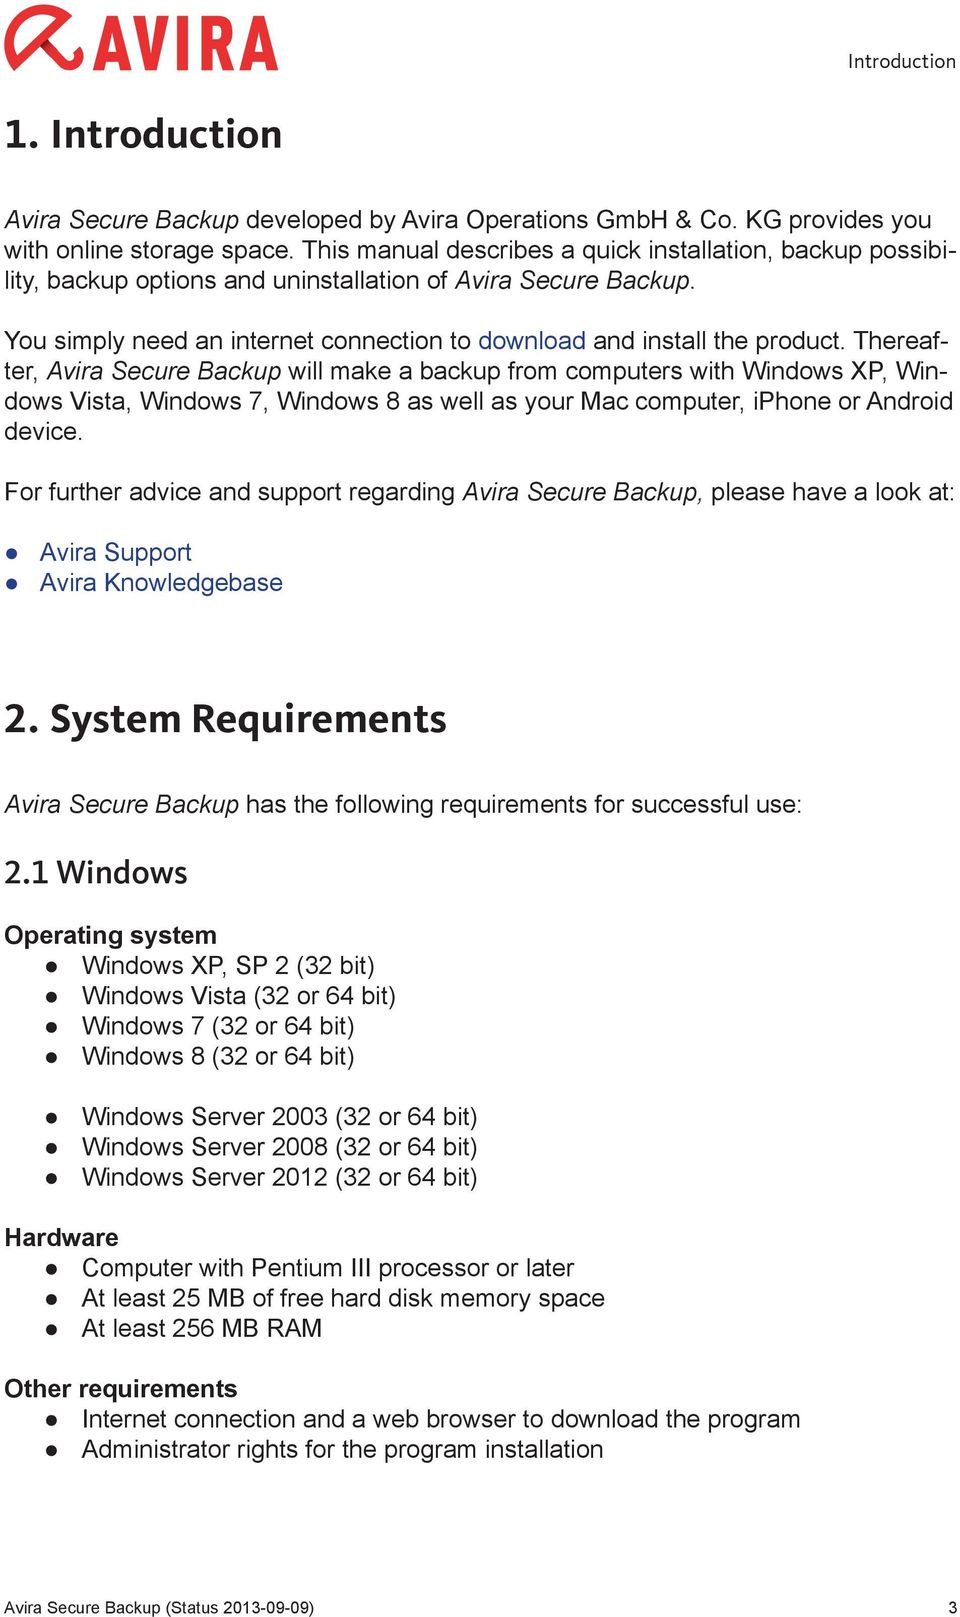 Thereafter, Avira Secure Backup will make a backup from computers with Windows XP, Windows Vista, Windows 7, Windows 8 as well as your Mac computer, iphone or Android device.